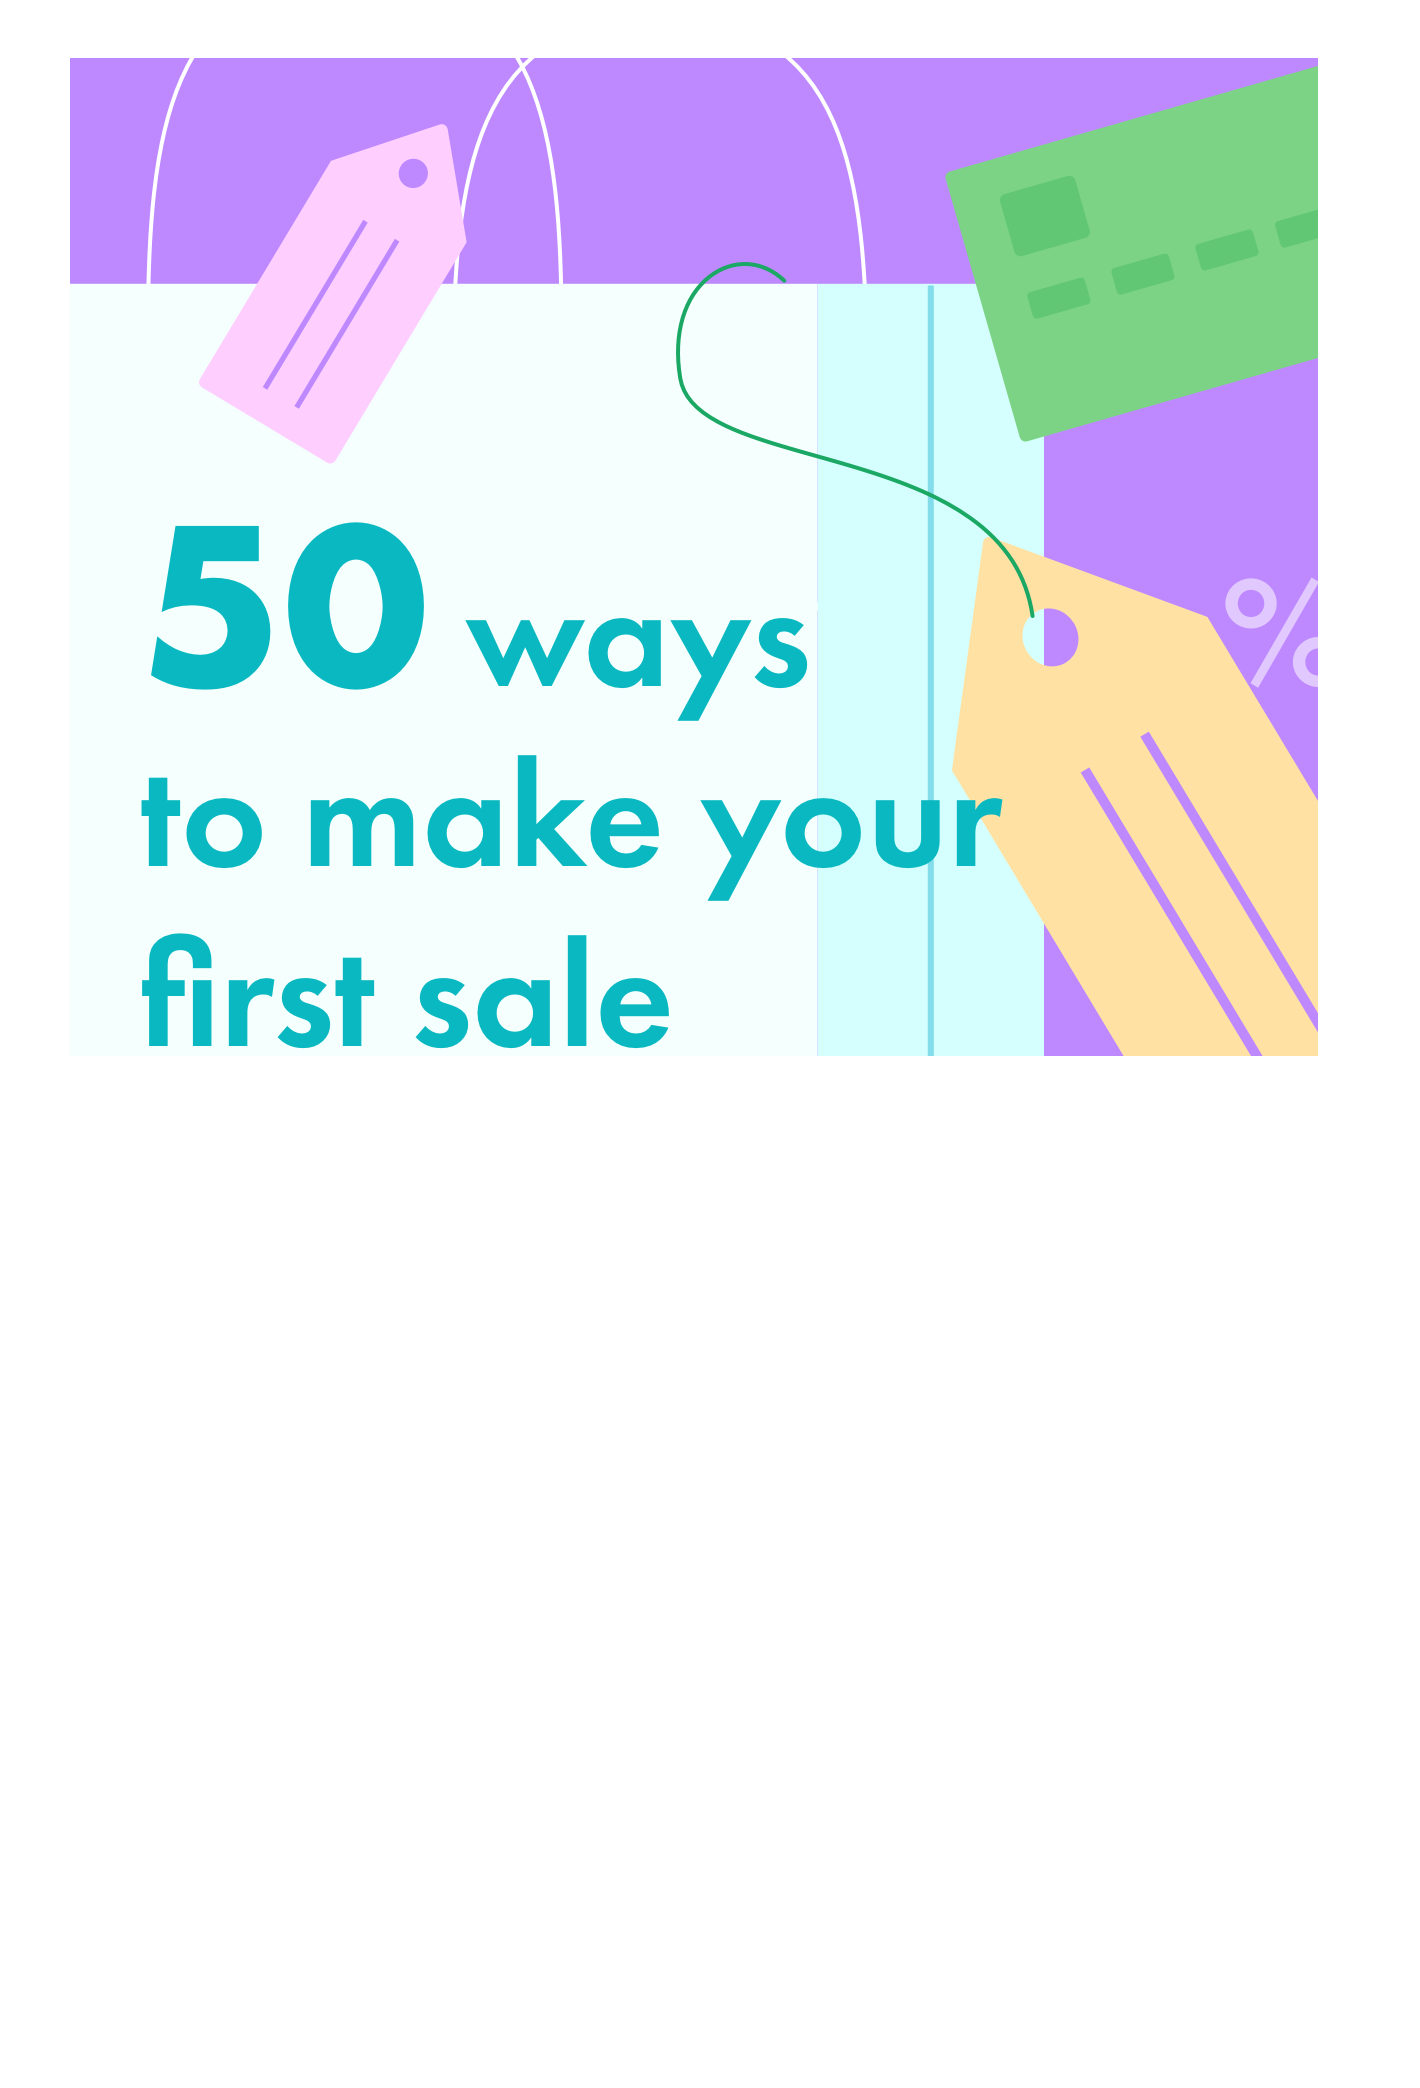 <https://web.shoplo.io/download/50-ways-to-make-your-first-sale>  50 Ways to Make Your First Sale  Learn how to attract first customers Download ebook <https://web.shoplo.io/download/50-ways-to-make-your-first-sale>